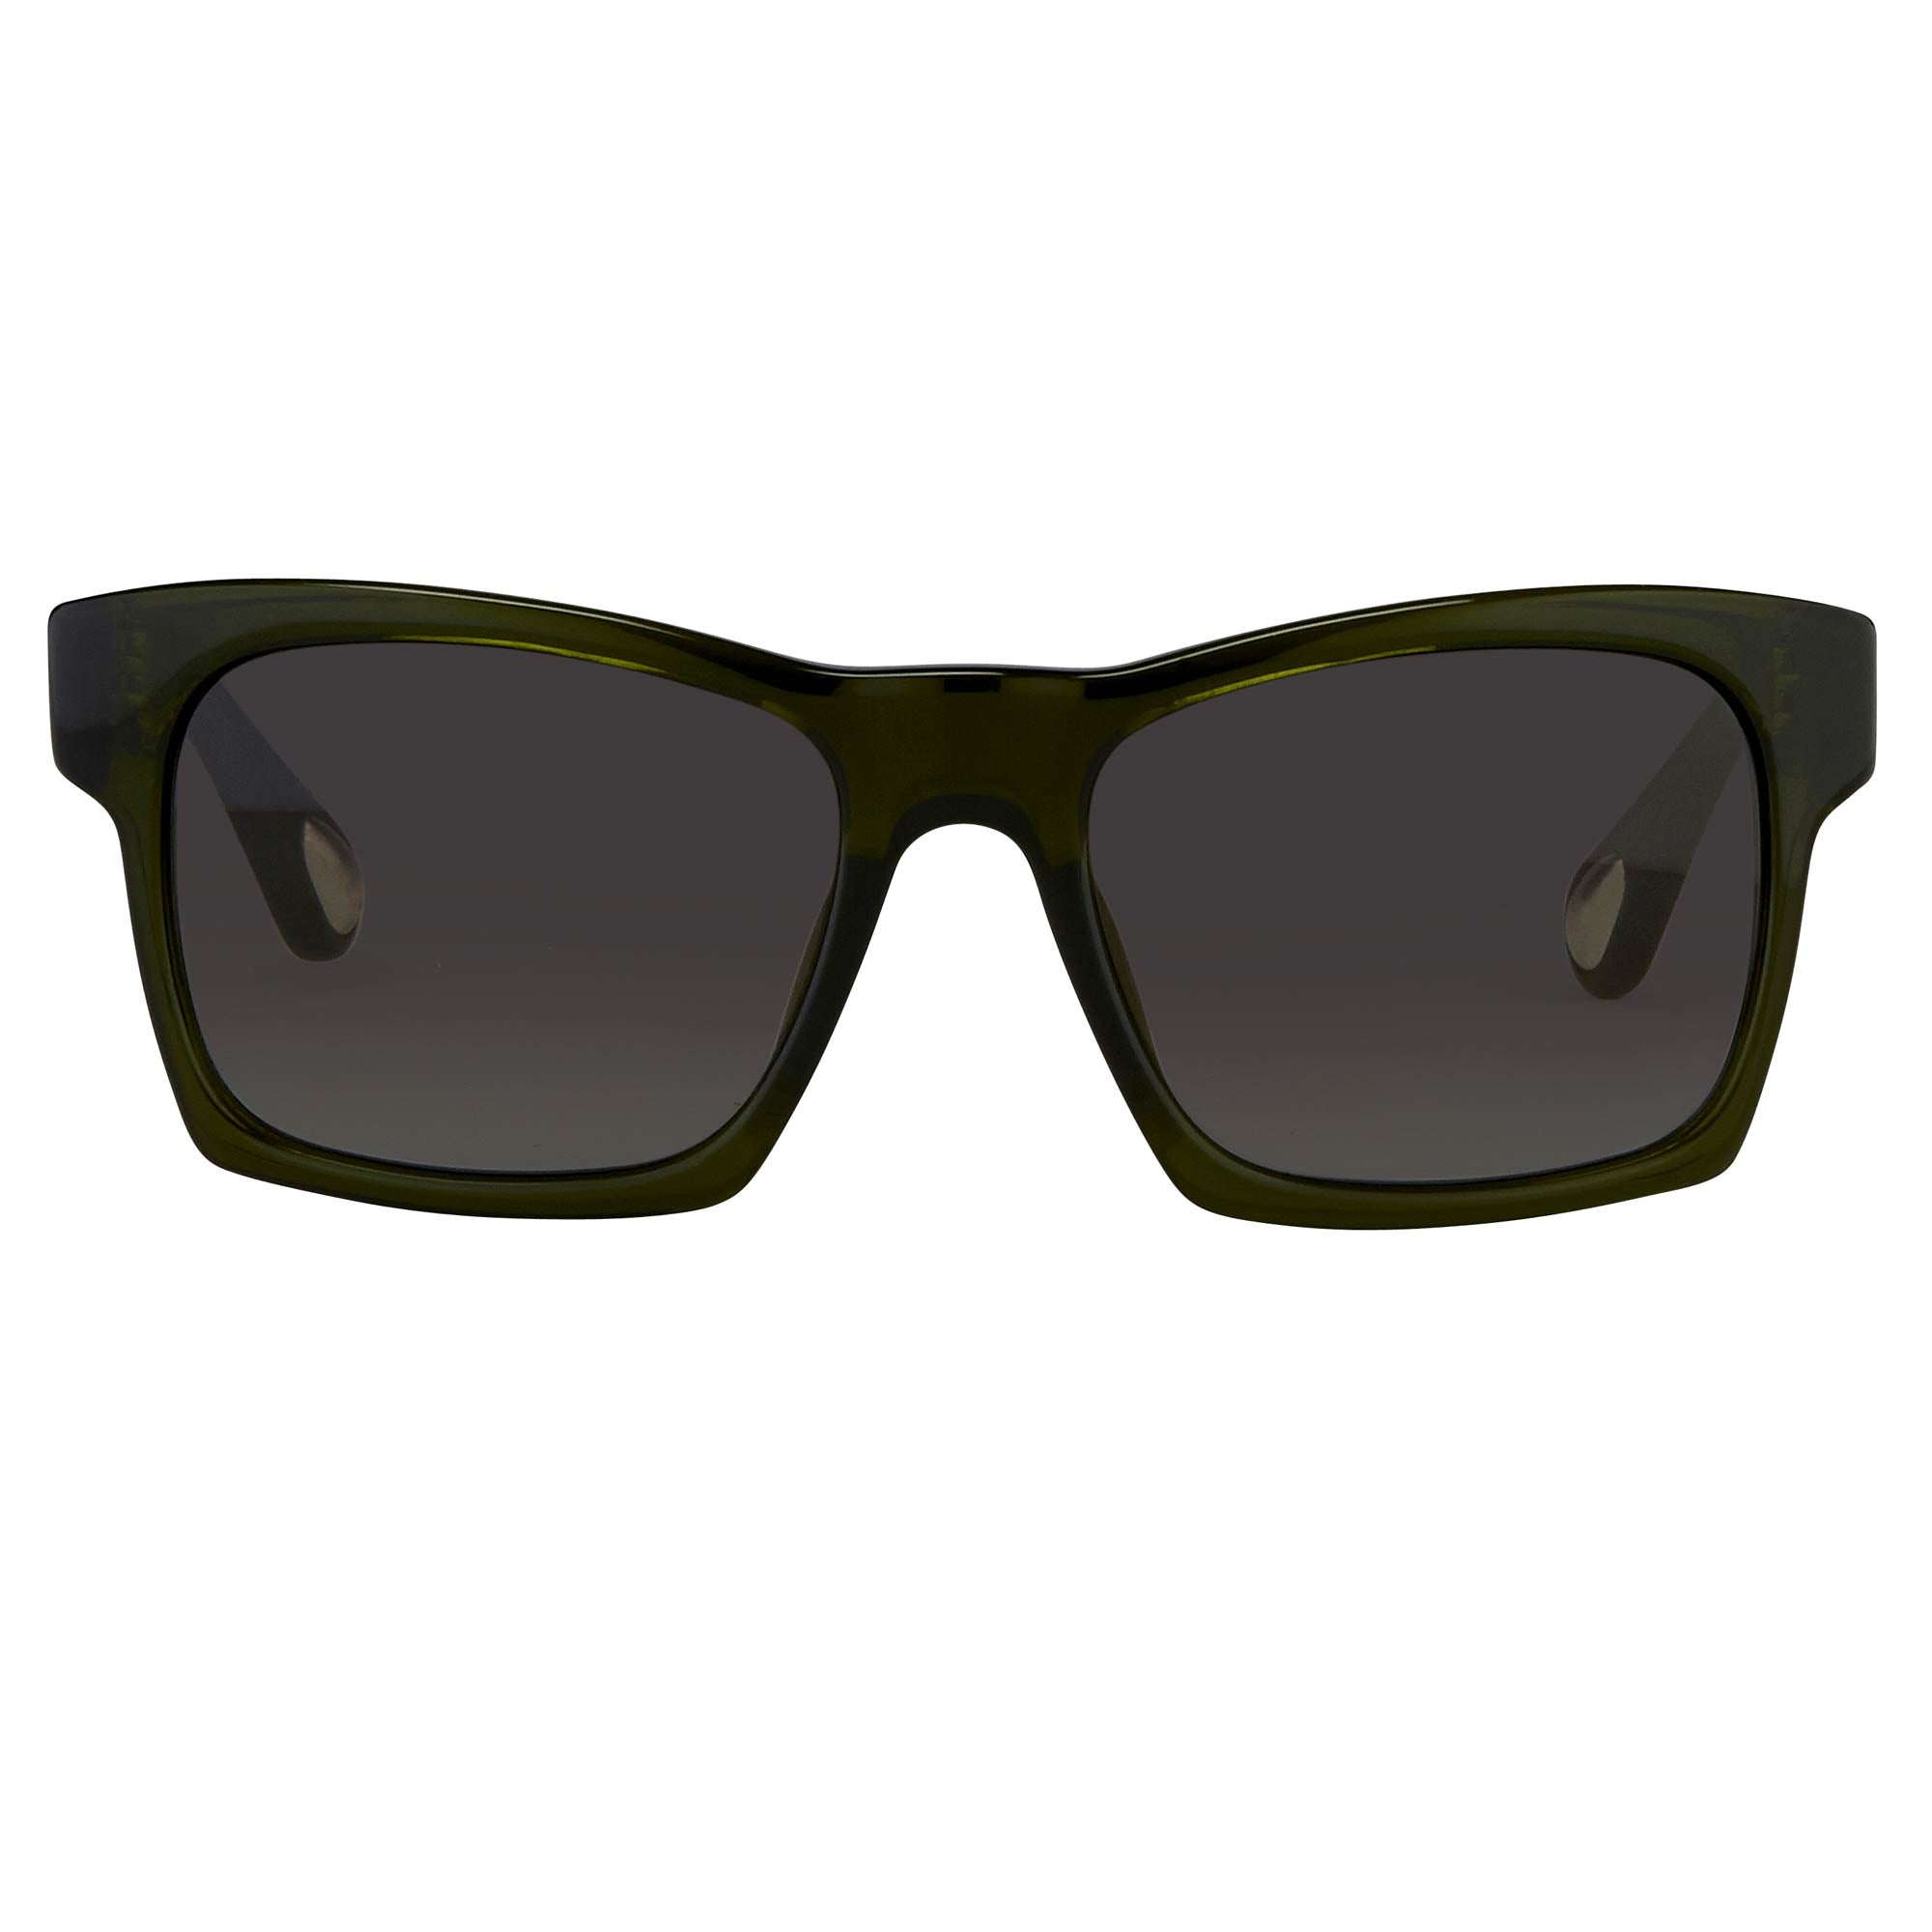 Ann Demeulemeester Sunglasses D-Frame Green and Green Graduated